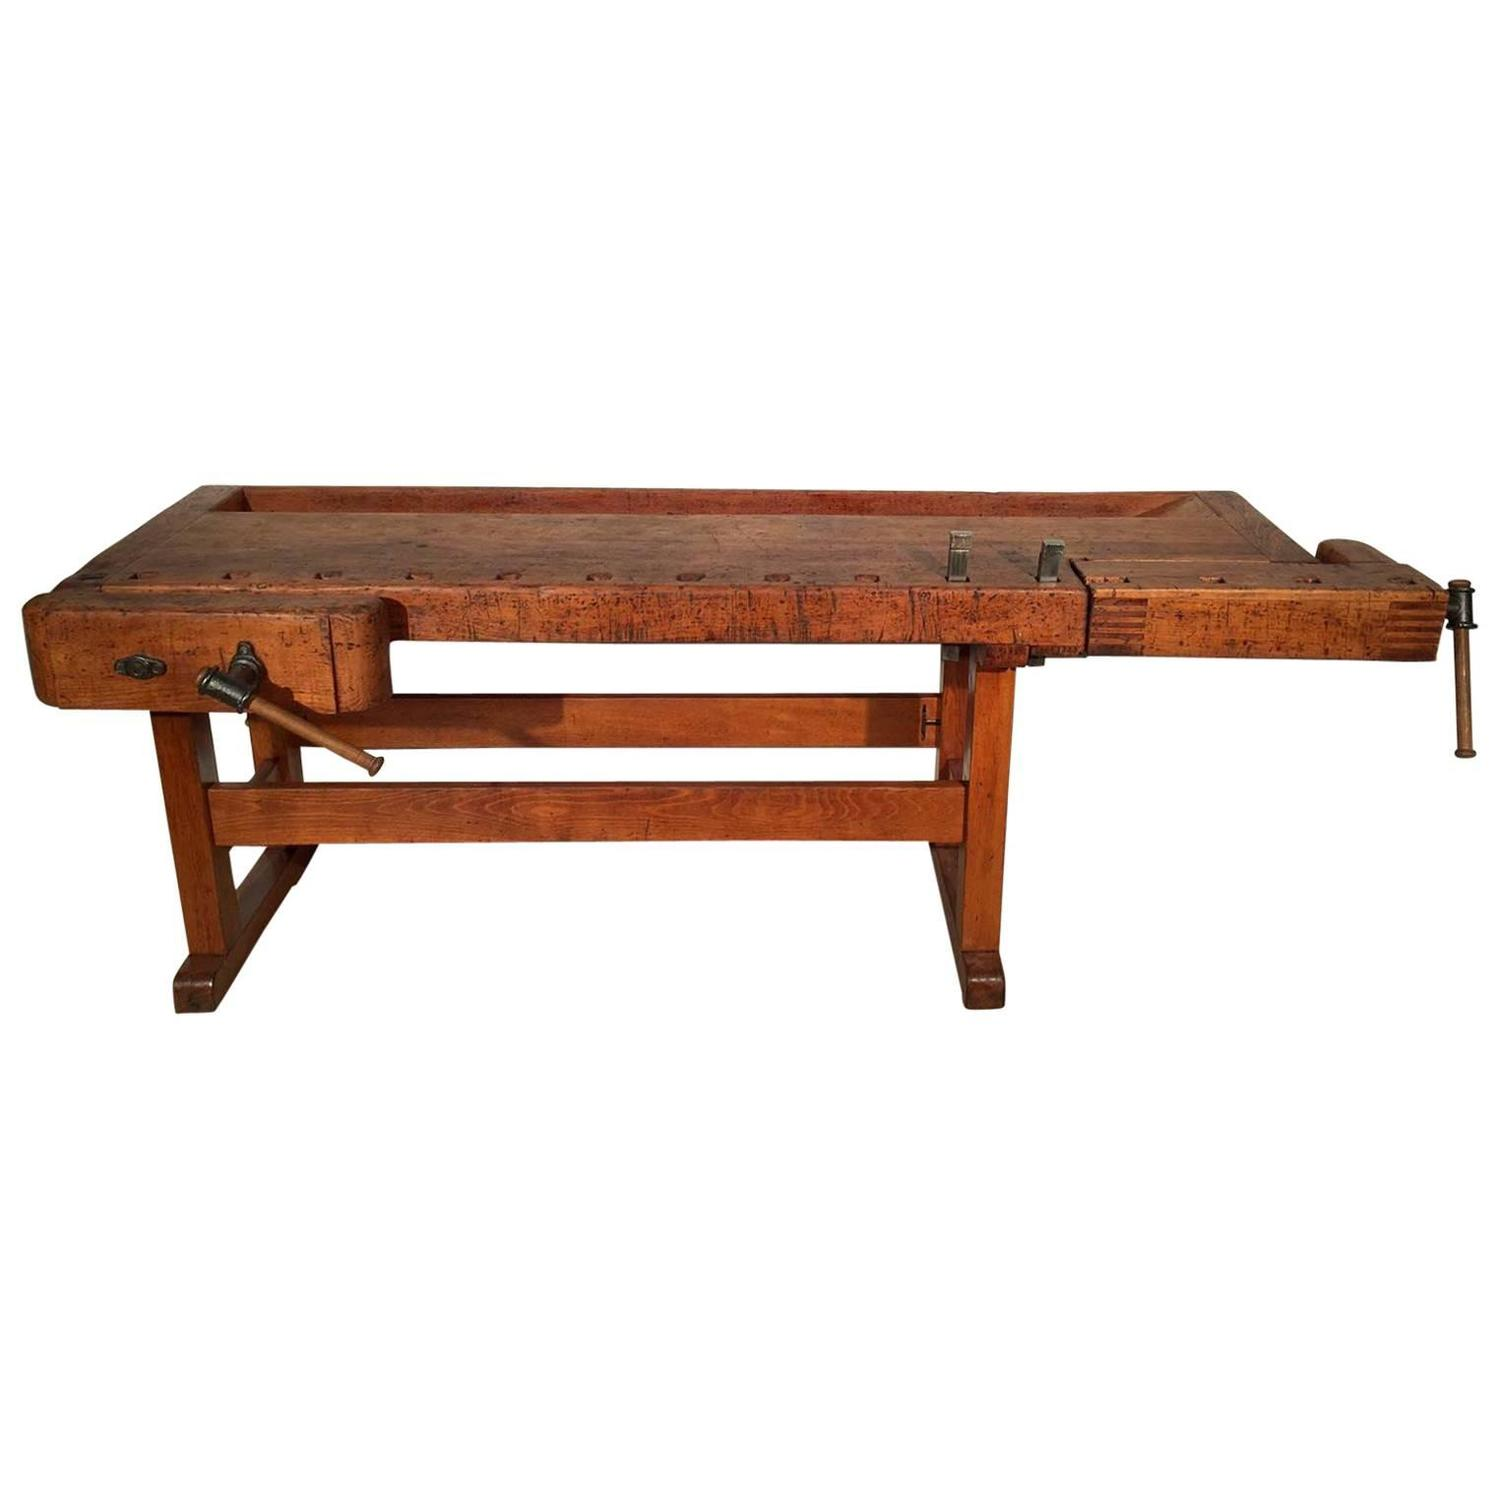 Book Of German Woodworking Bench In Singapore By Liam